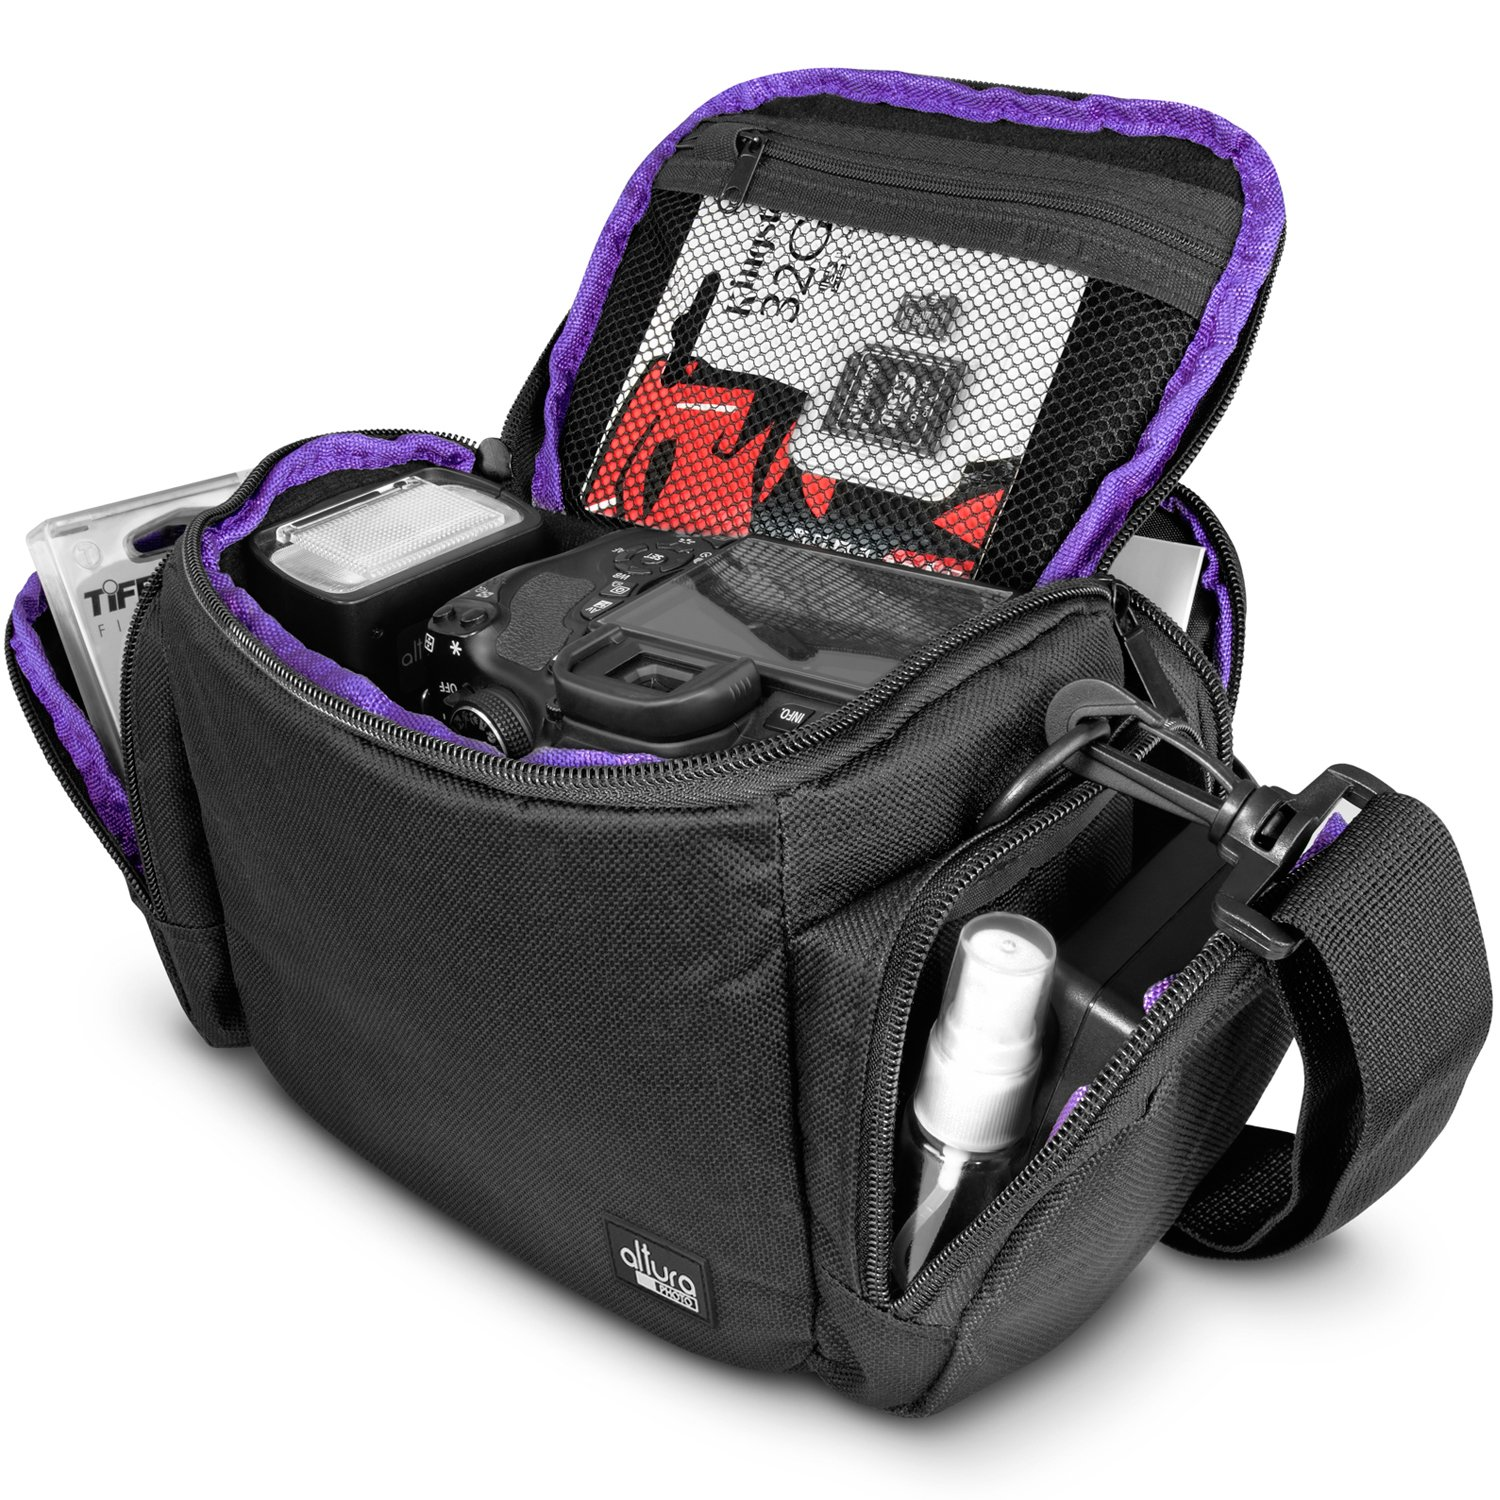 Medium Camera Bag Case by Altura Photo for Nikon, Canon, Sony DSLR and Mirrorless Cameras and Lenses